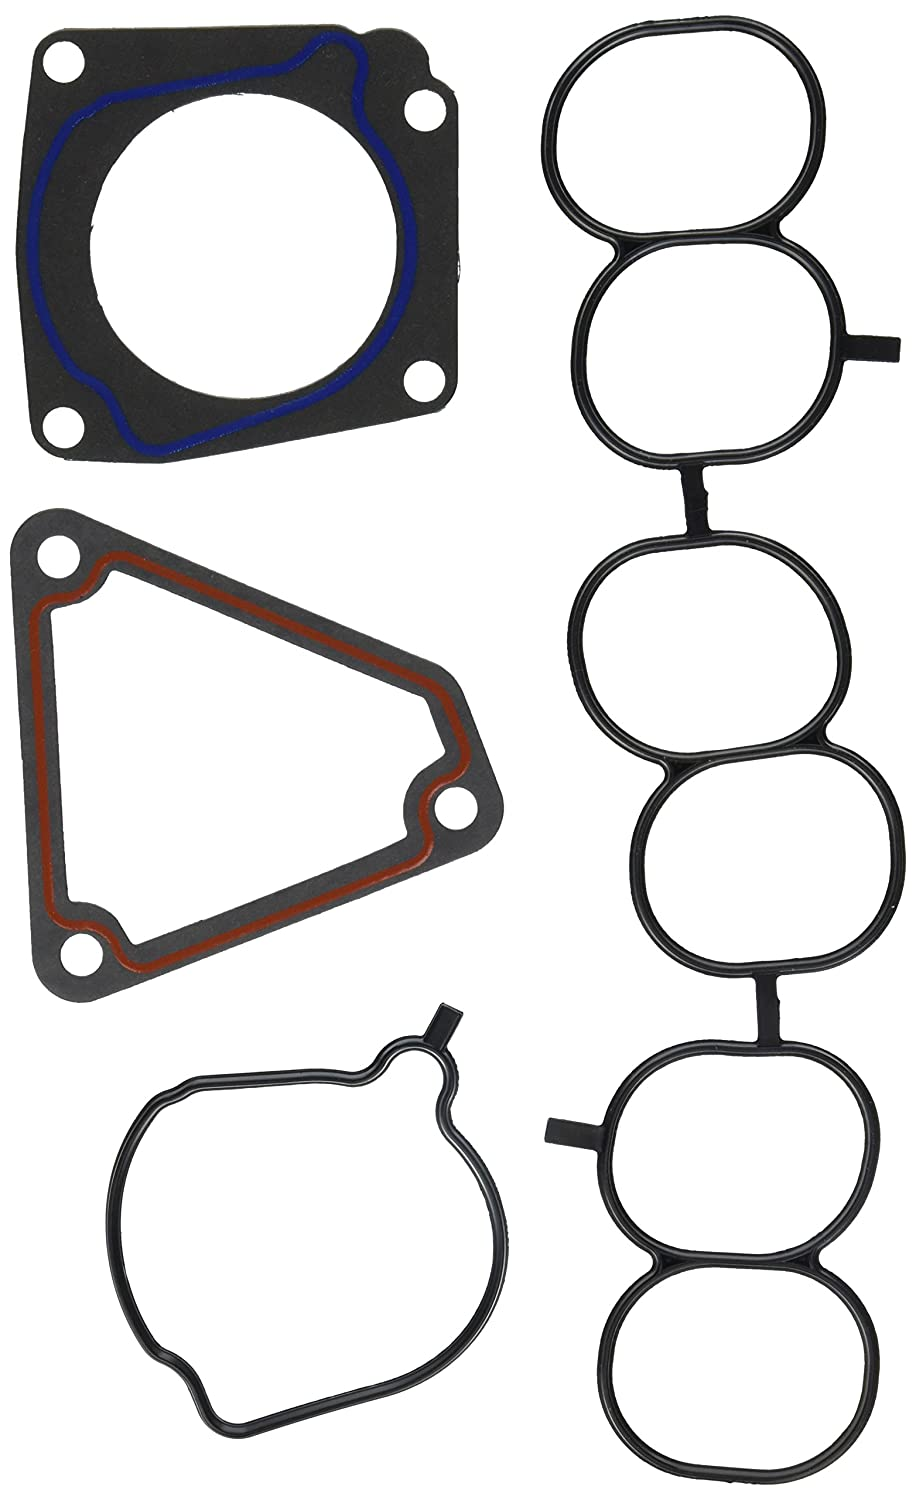 Fel-Pro MS 97002 Upper Intake/Plenum Gasket Set